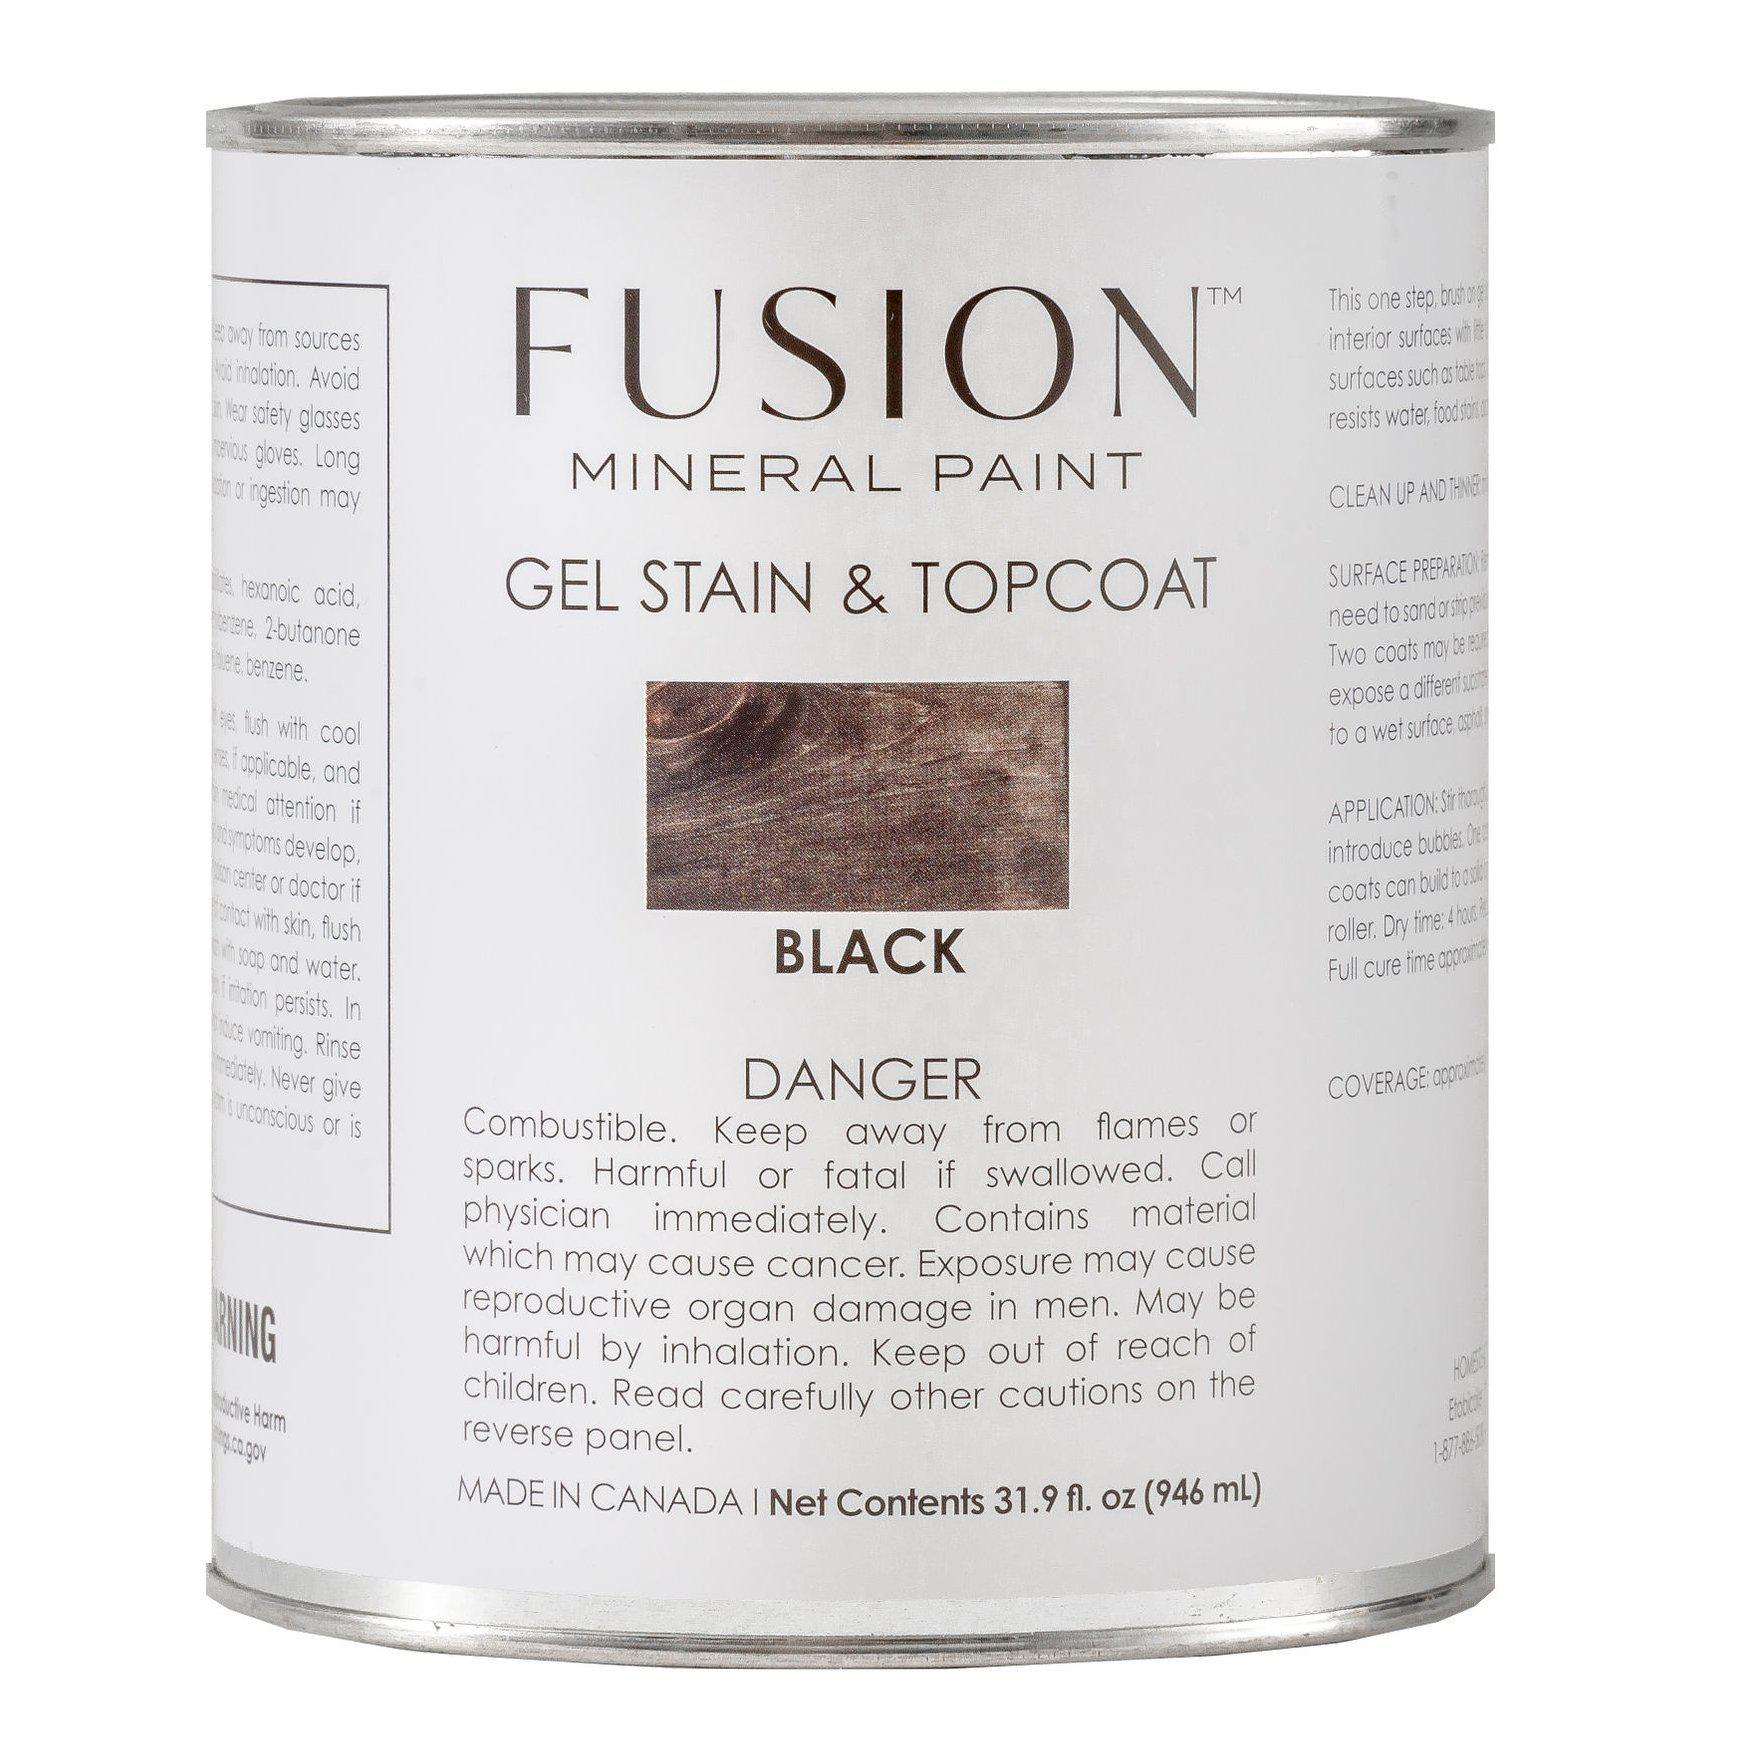 Fusion Gel Stain & Top Coat - All In One @ The Painted Heirloom